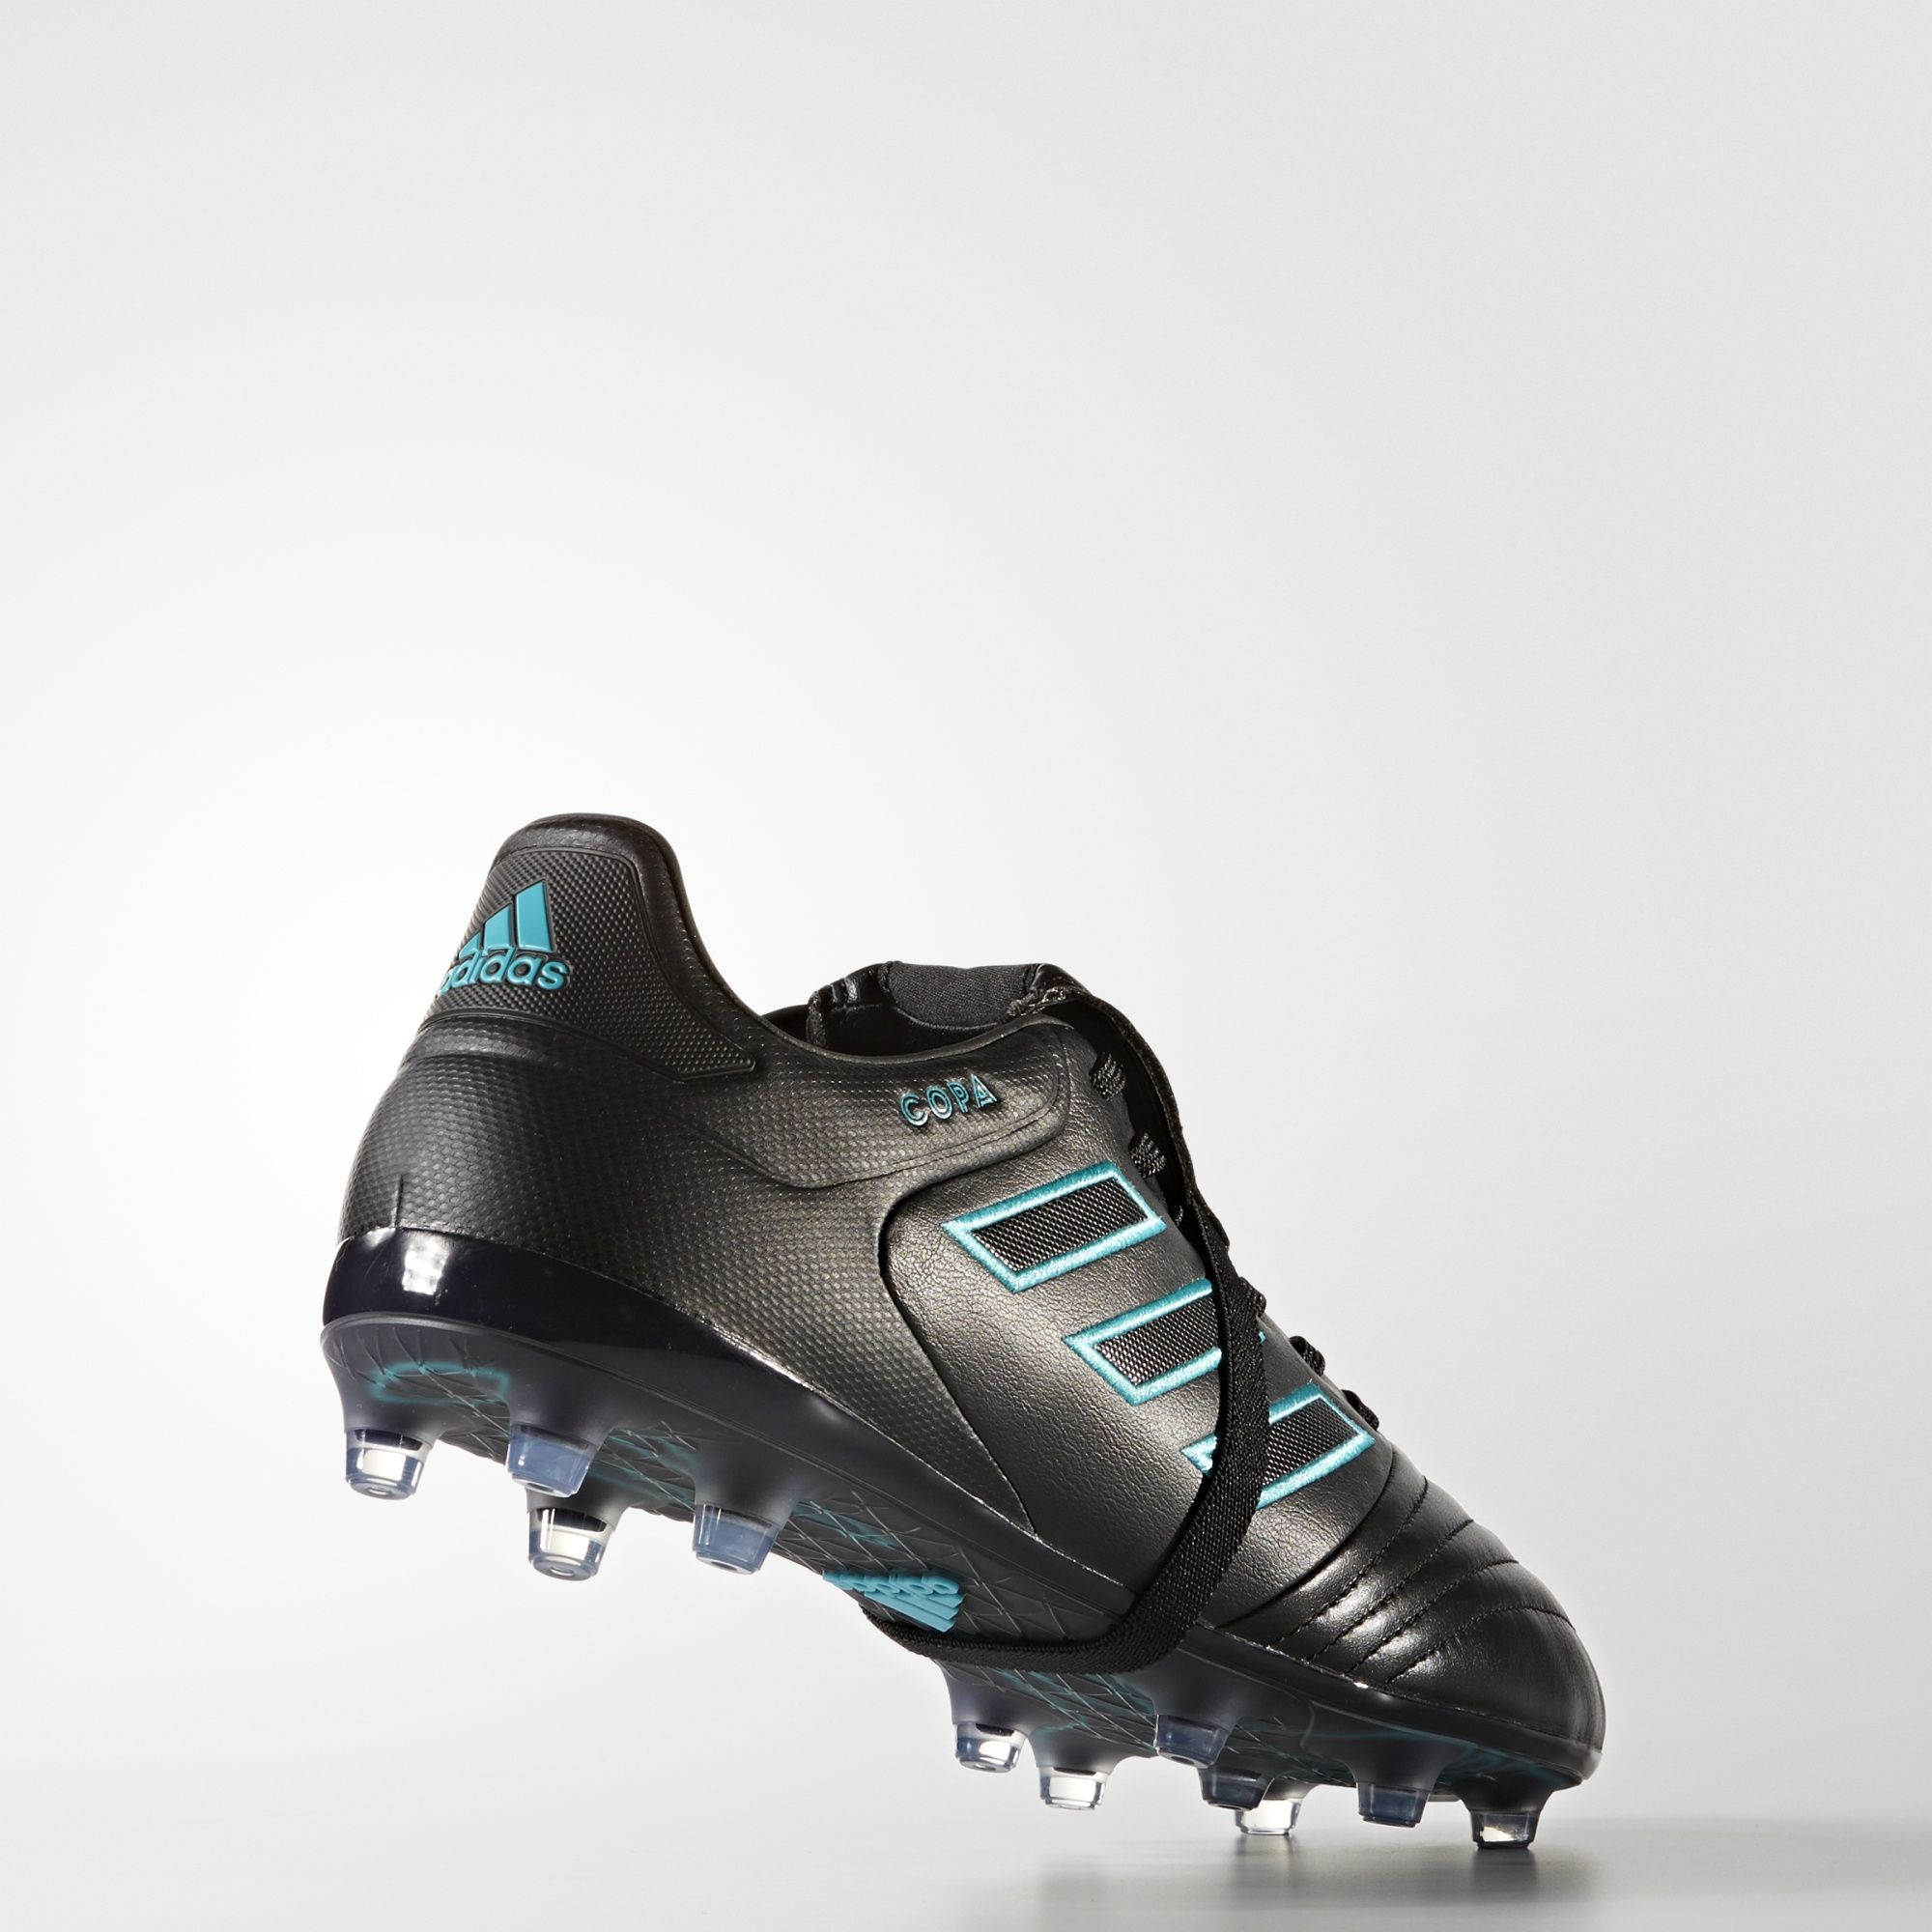 9e3b9726cfe5 ... Click to enlarge image  adidas_copa_gloro_17_2_firm_ground_boots_core_black_energy_blue_e.jpg ...